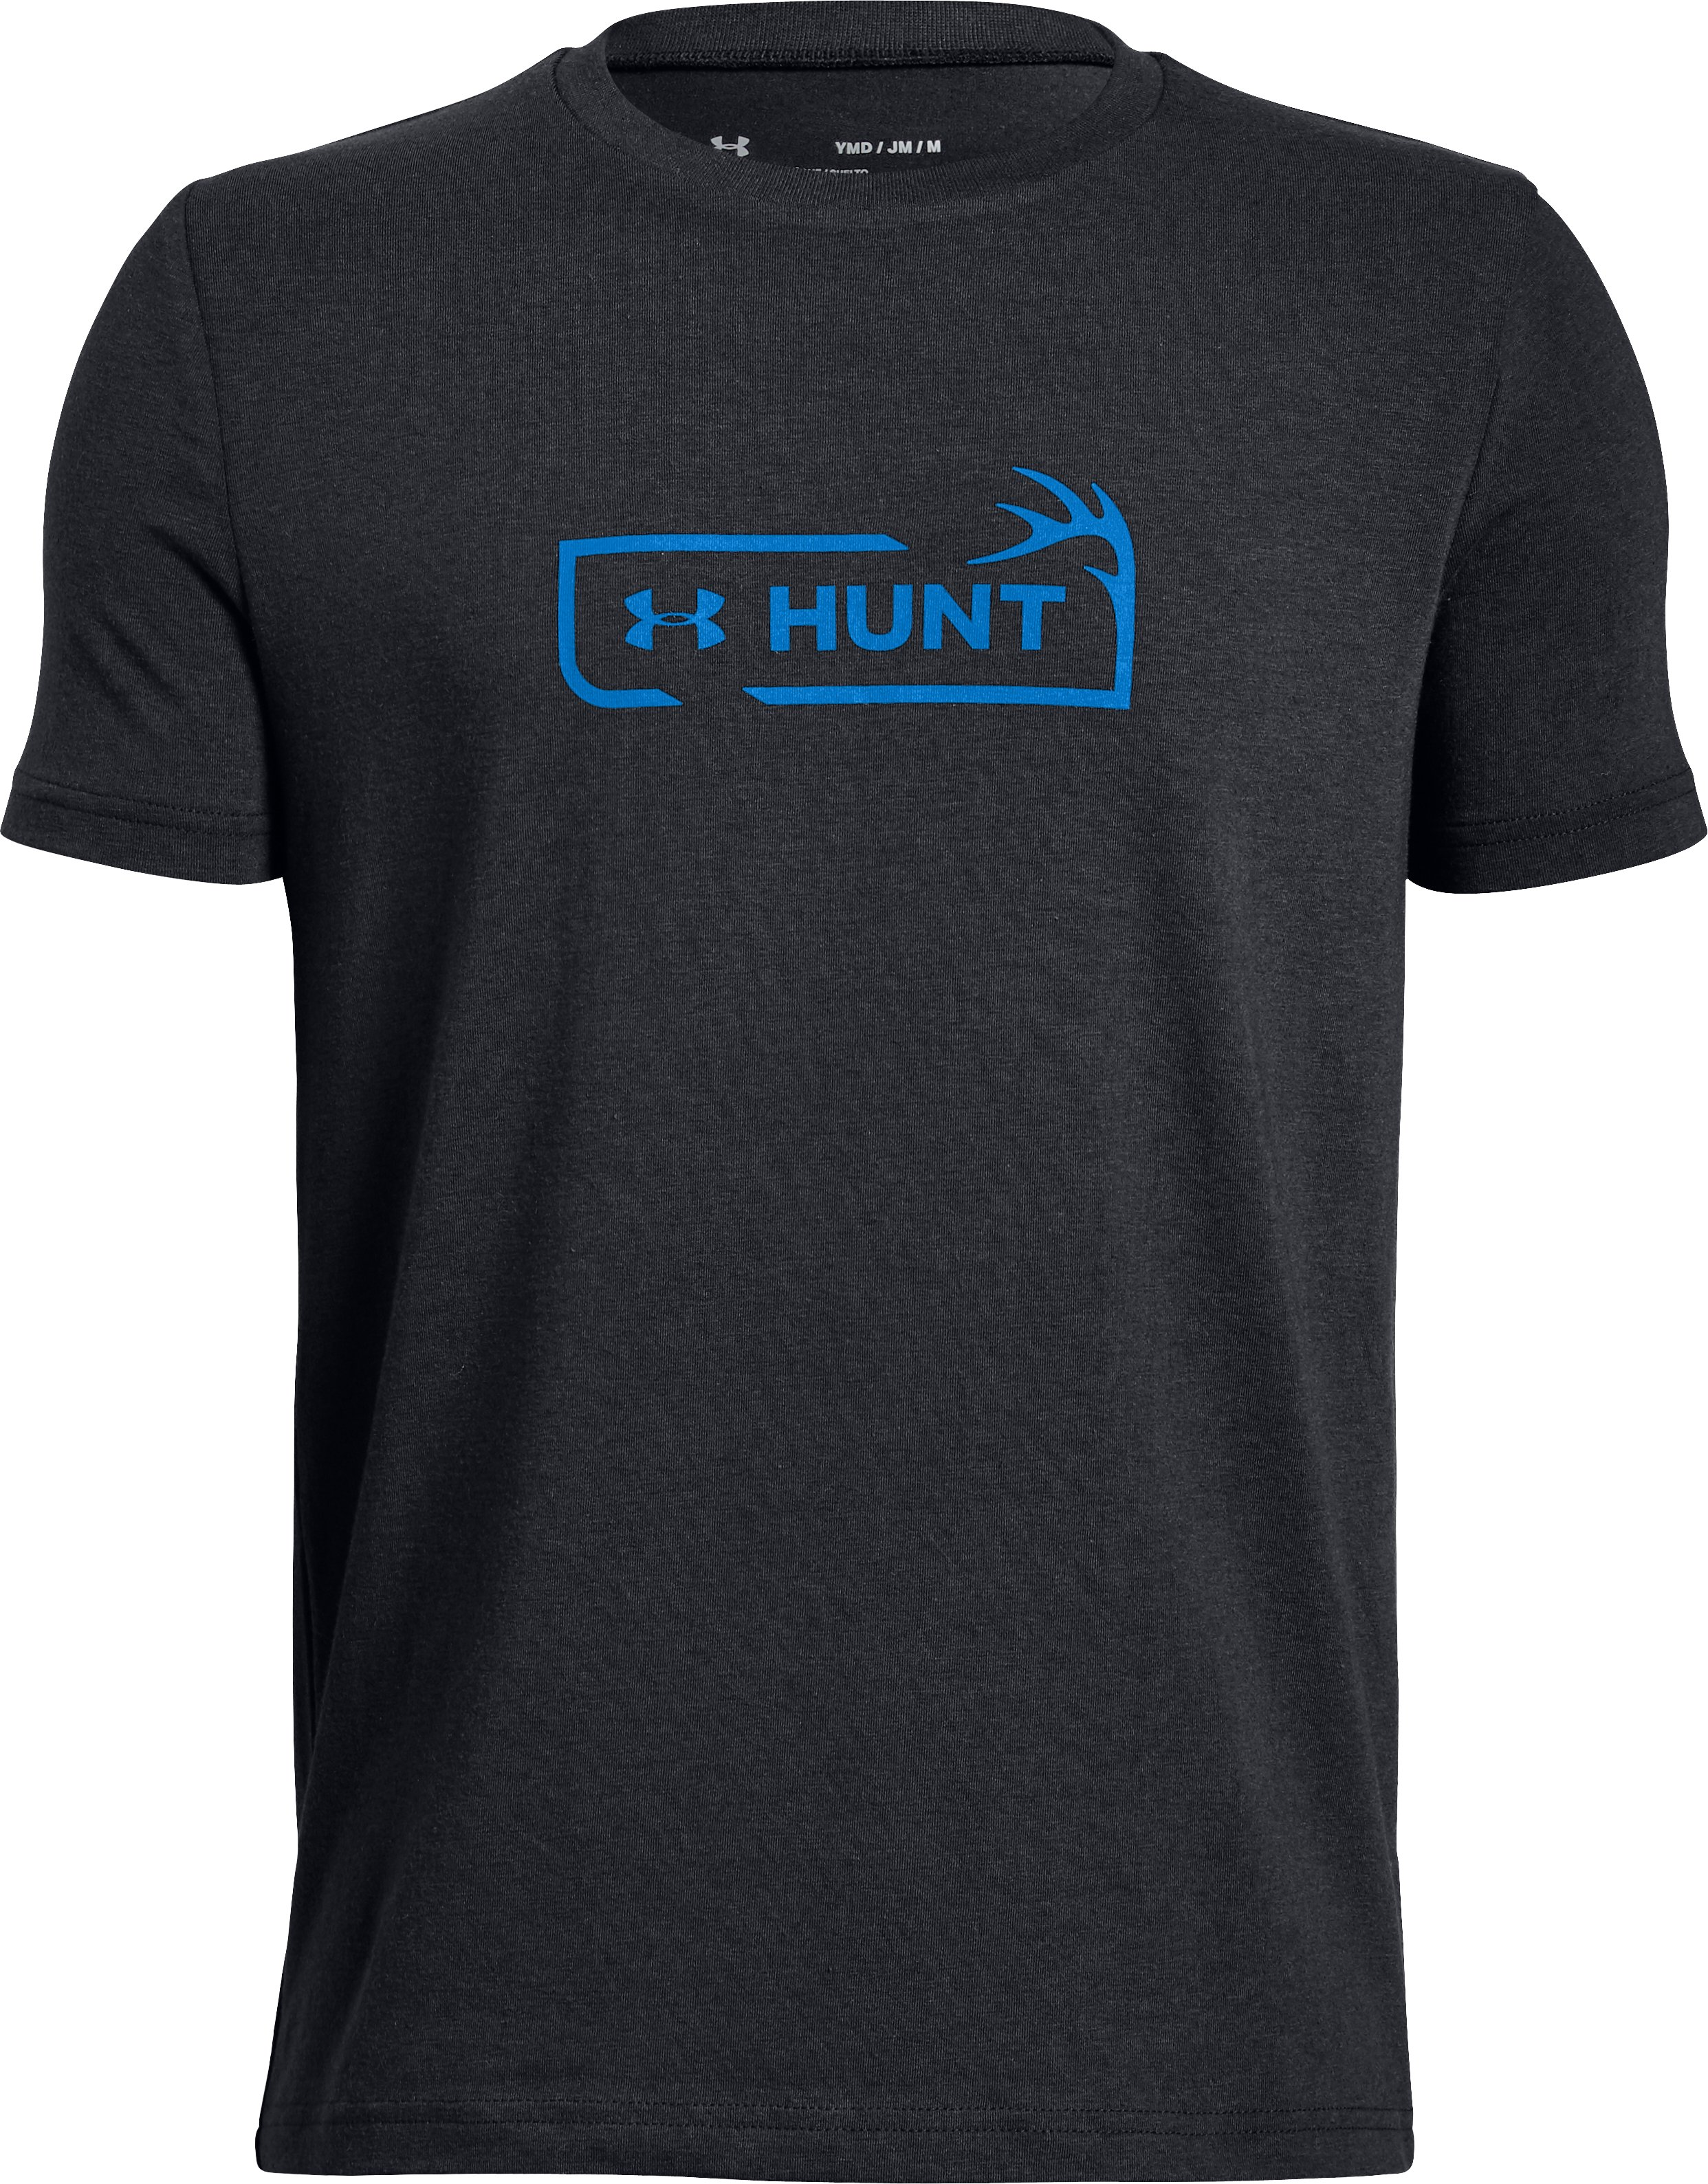 Boys' UA Hunt Icon T-Shirt 2 Colors $20.00